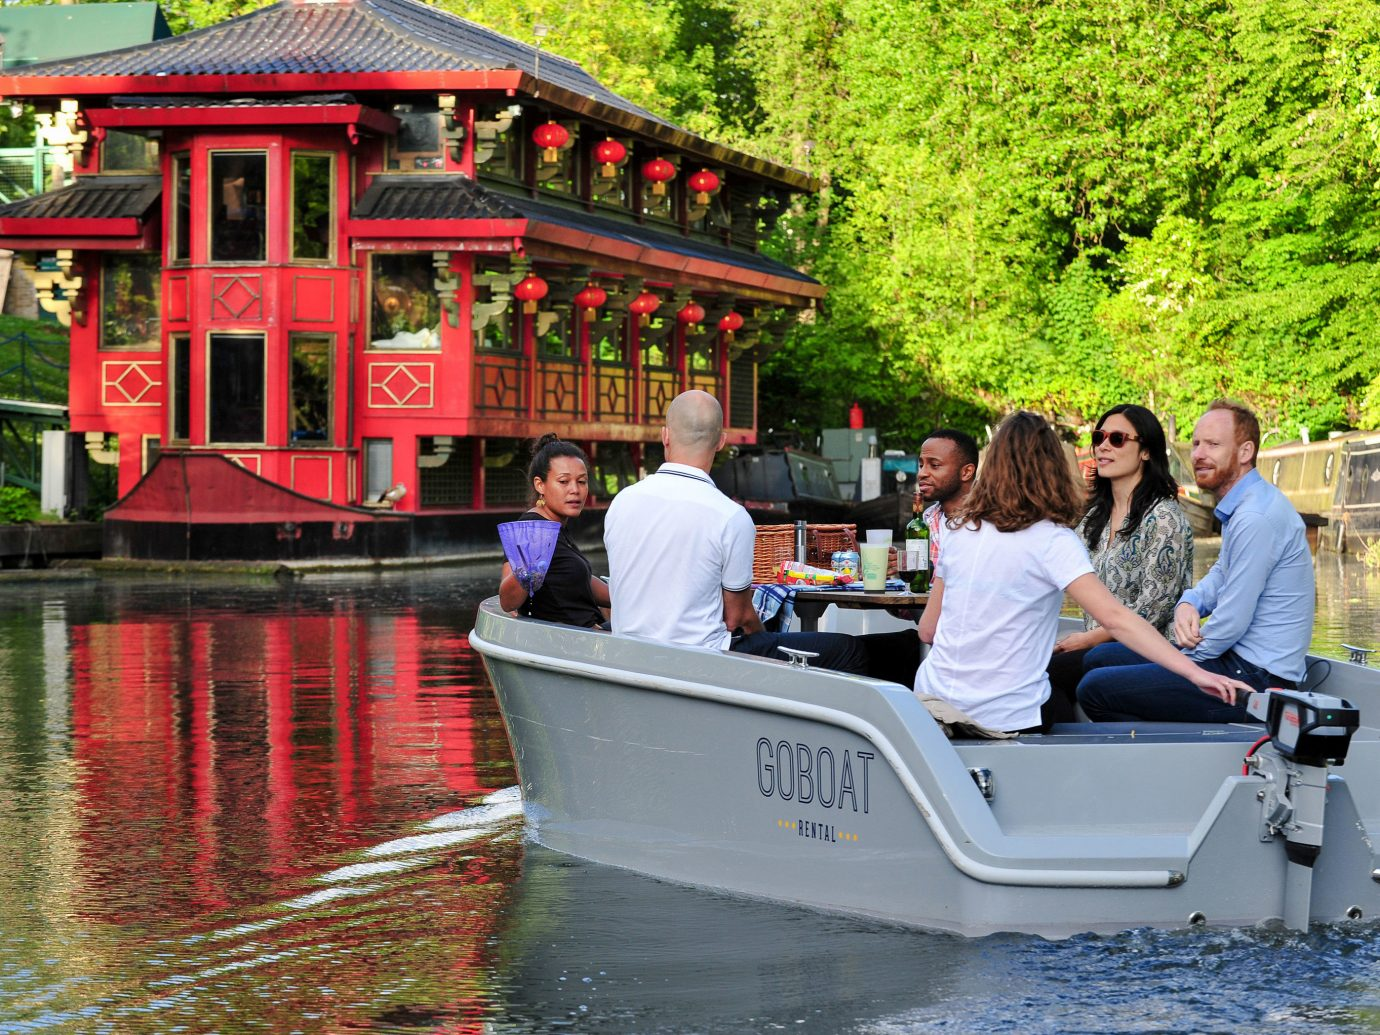 waterway water transportation Boat water plant boating leisure Canal tree recreation vehicle tourism watercraft rowing